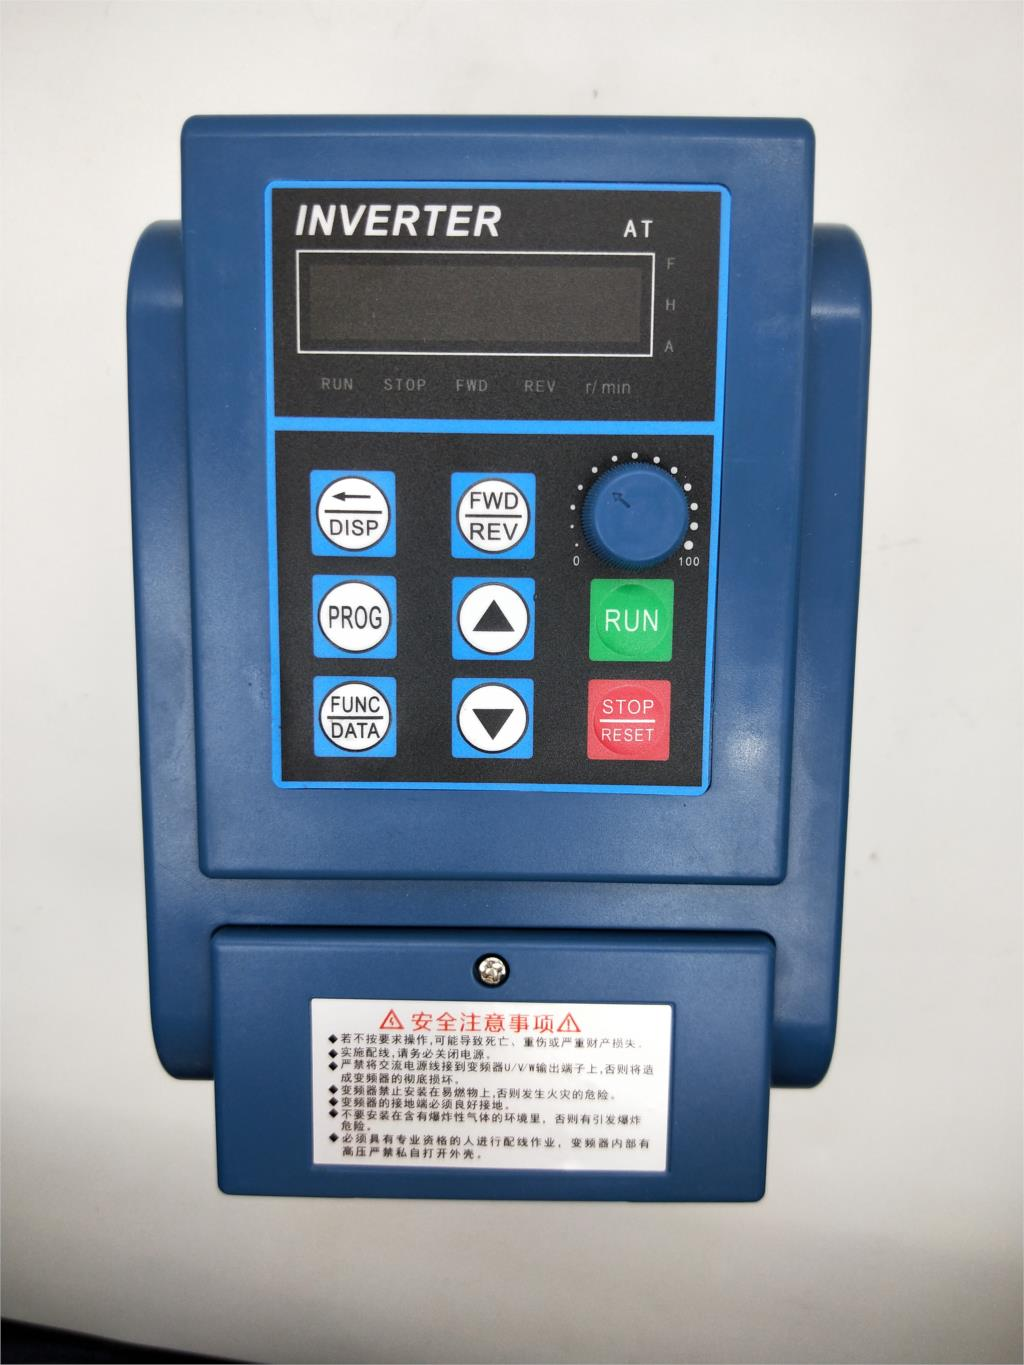 AC 380V 1.5kW/2.2KW/4KW/5.5KW/7.5KW  Variable Frequency Drive Free Ship 3 Phase Speed Controller Inverter Motor VFD Inverter|Inverters & Converters| |  - title=